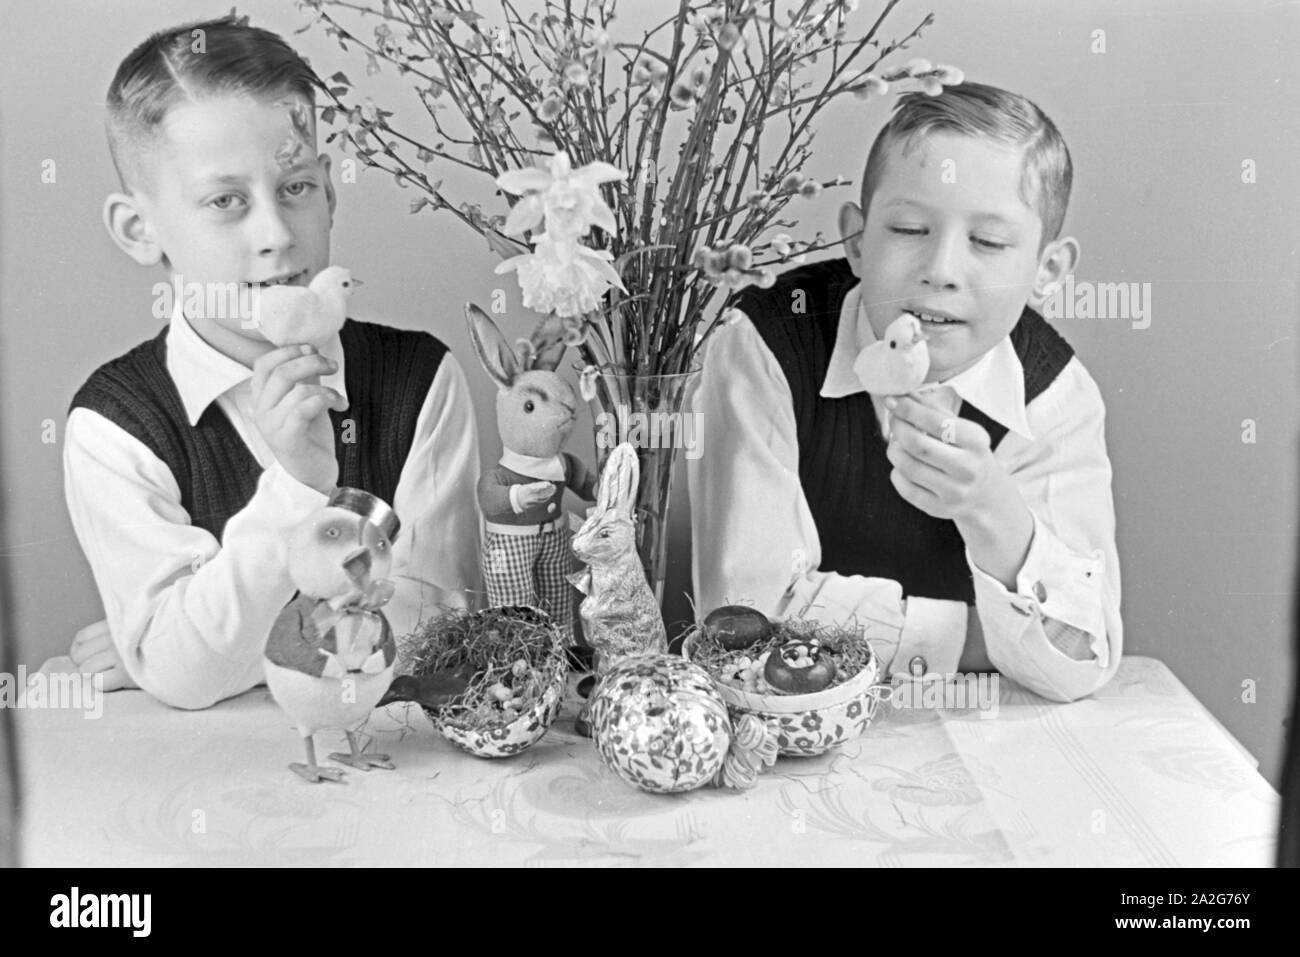 Zwei Jungen mit Ostedekoration, Deutschland 1930er Jahre. Two boys at a table with easter decoration, Germany 1930s. Stock Photo